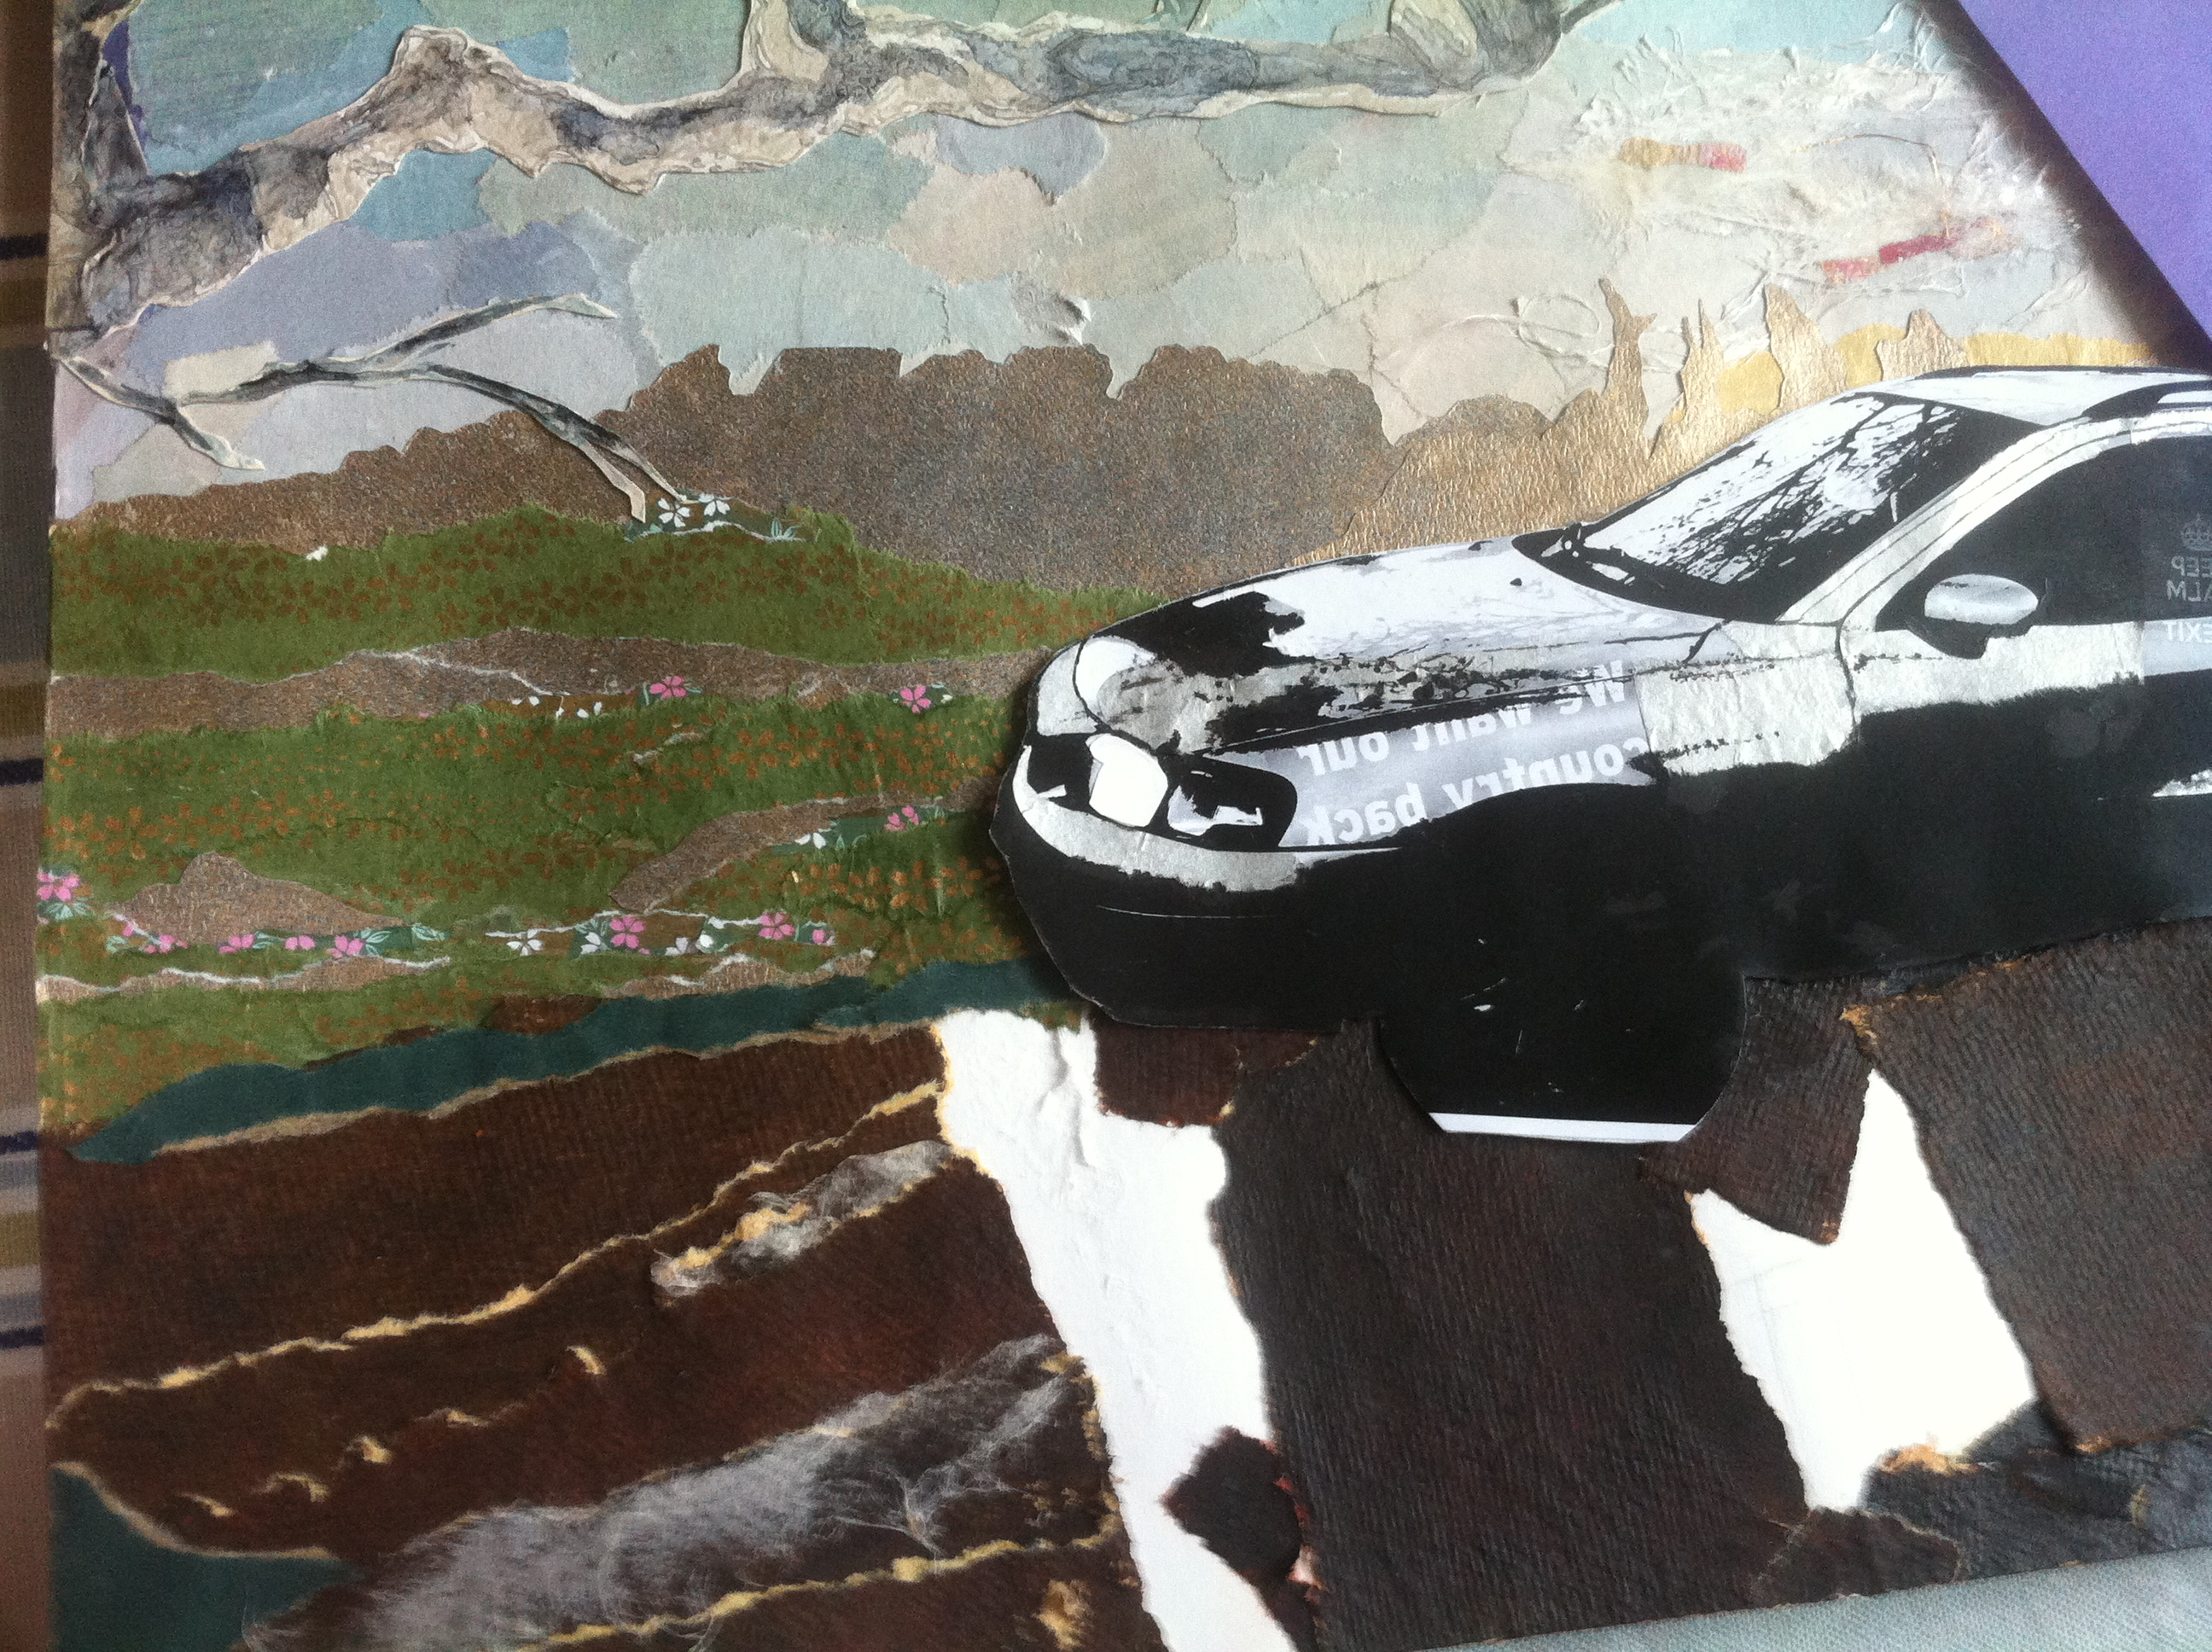 Detail of a collage showing a car against a background of countryside made out of origami and wall papers